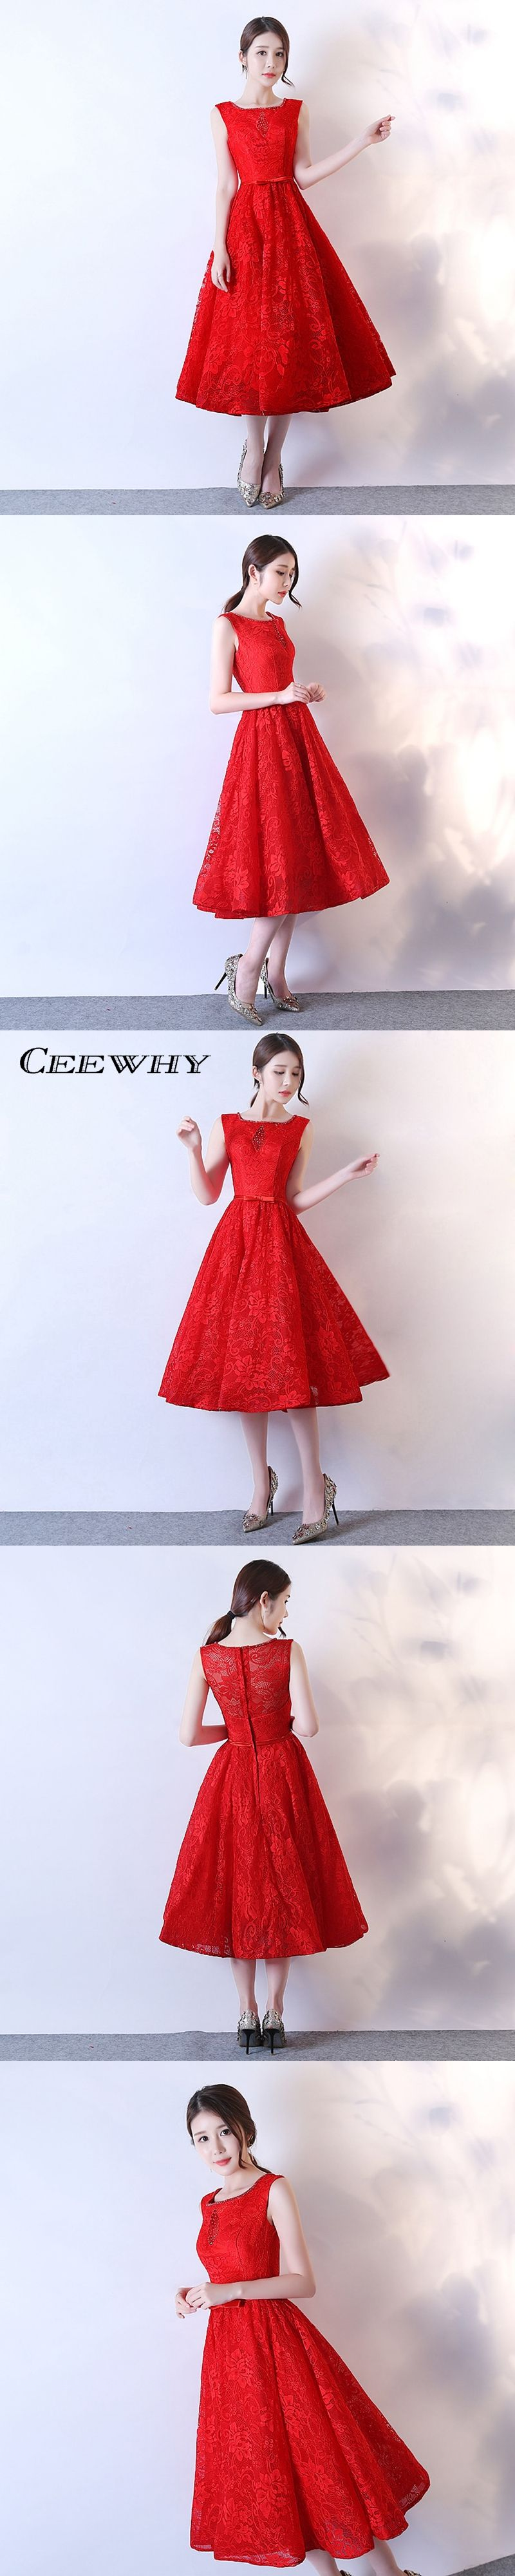 Ceewhy aline lace wedding party dress tealength evening dress real